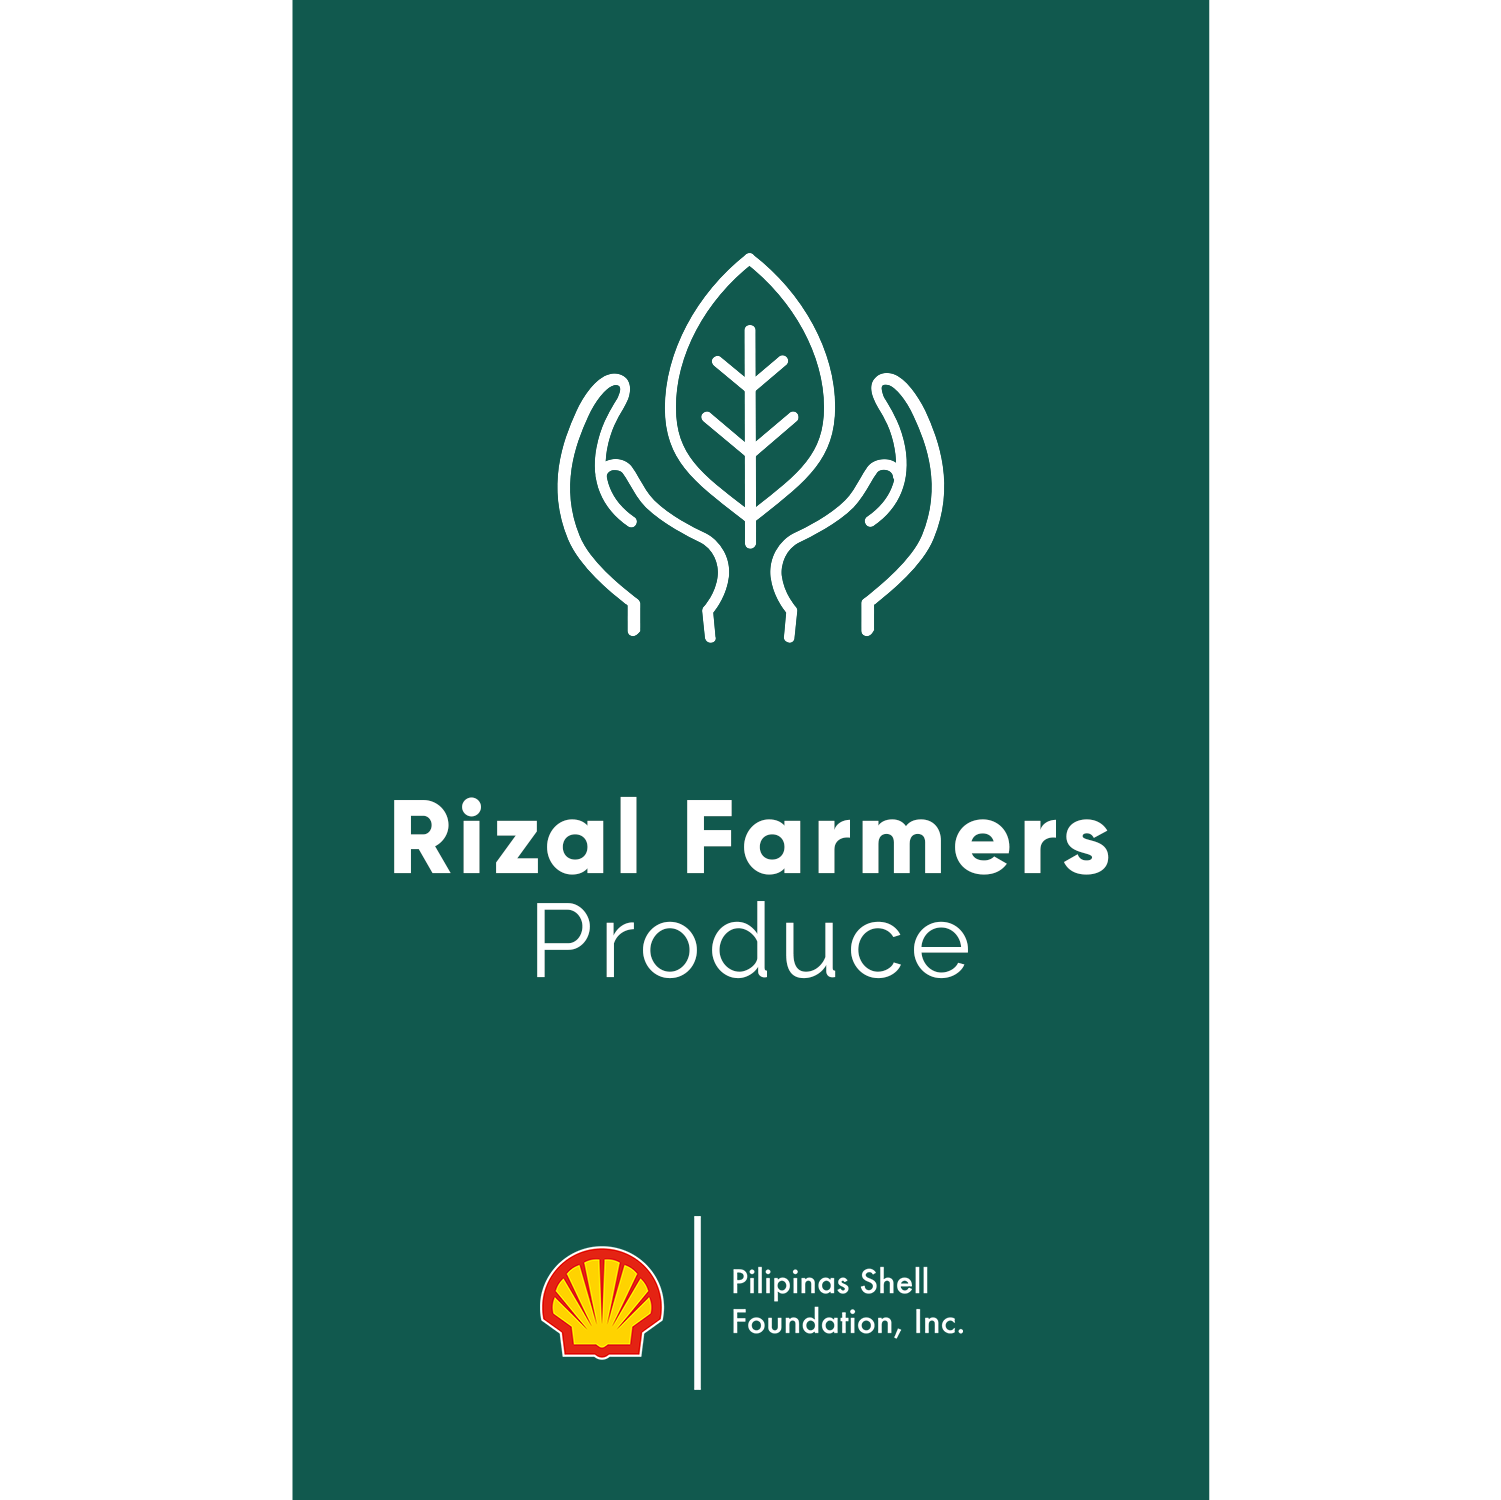 rizal-farmers-produce